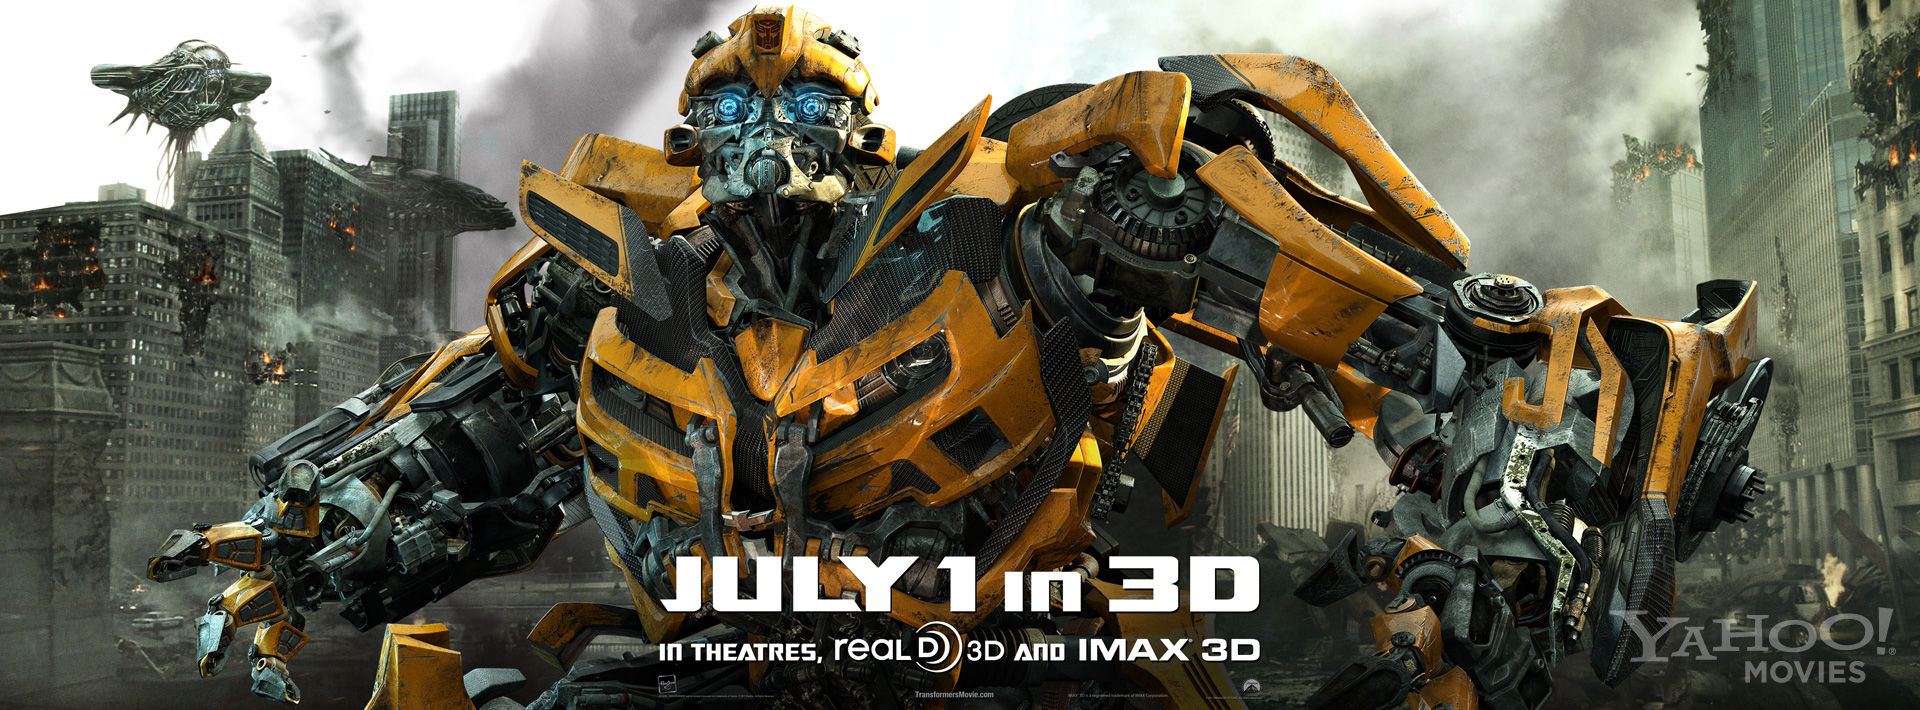 transformers dark of the moon bumblebee poster. A new TRANSFORMERS DARK OF THE